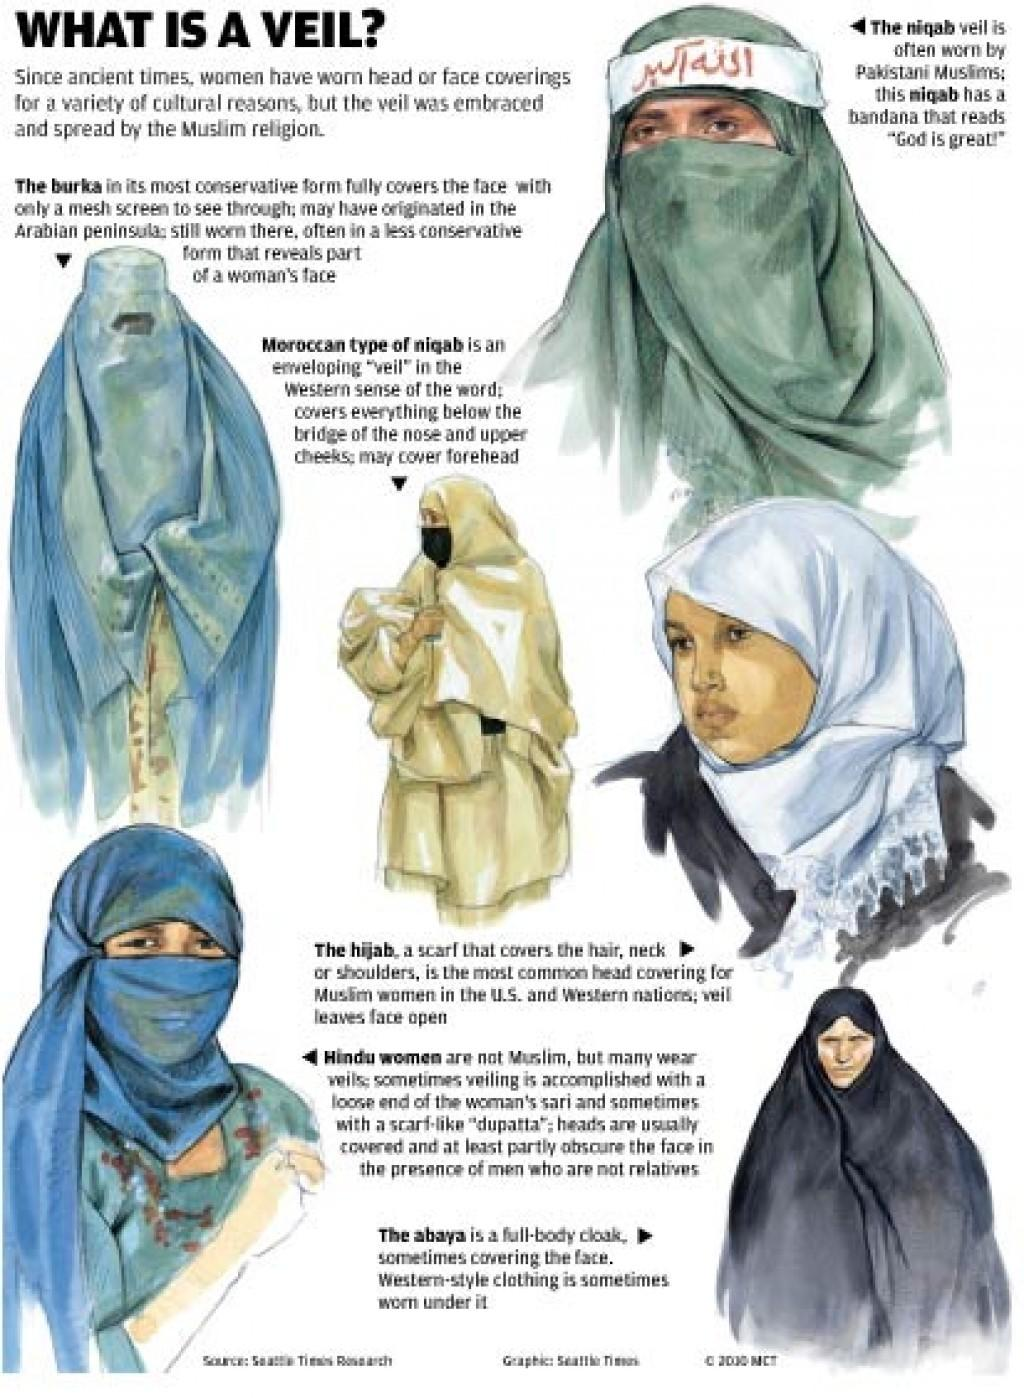 Hijab is a sign of modesty, not a security risk | Faith Perspectives